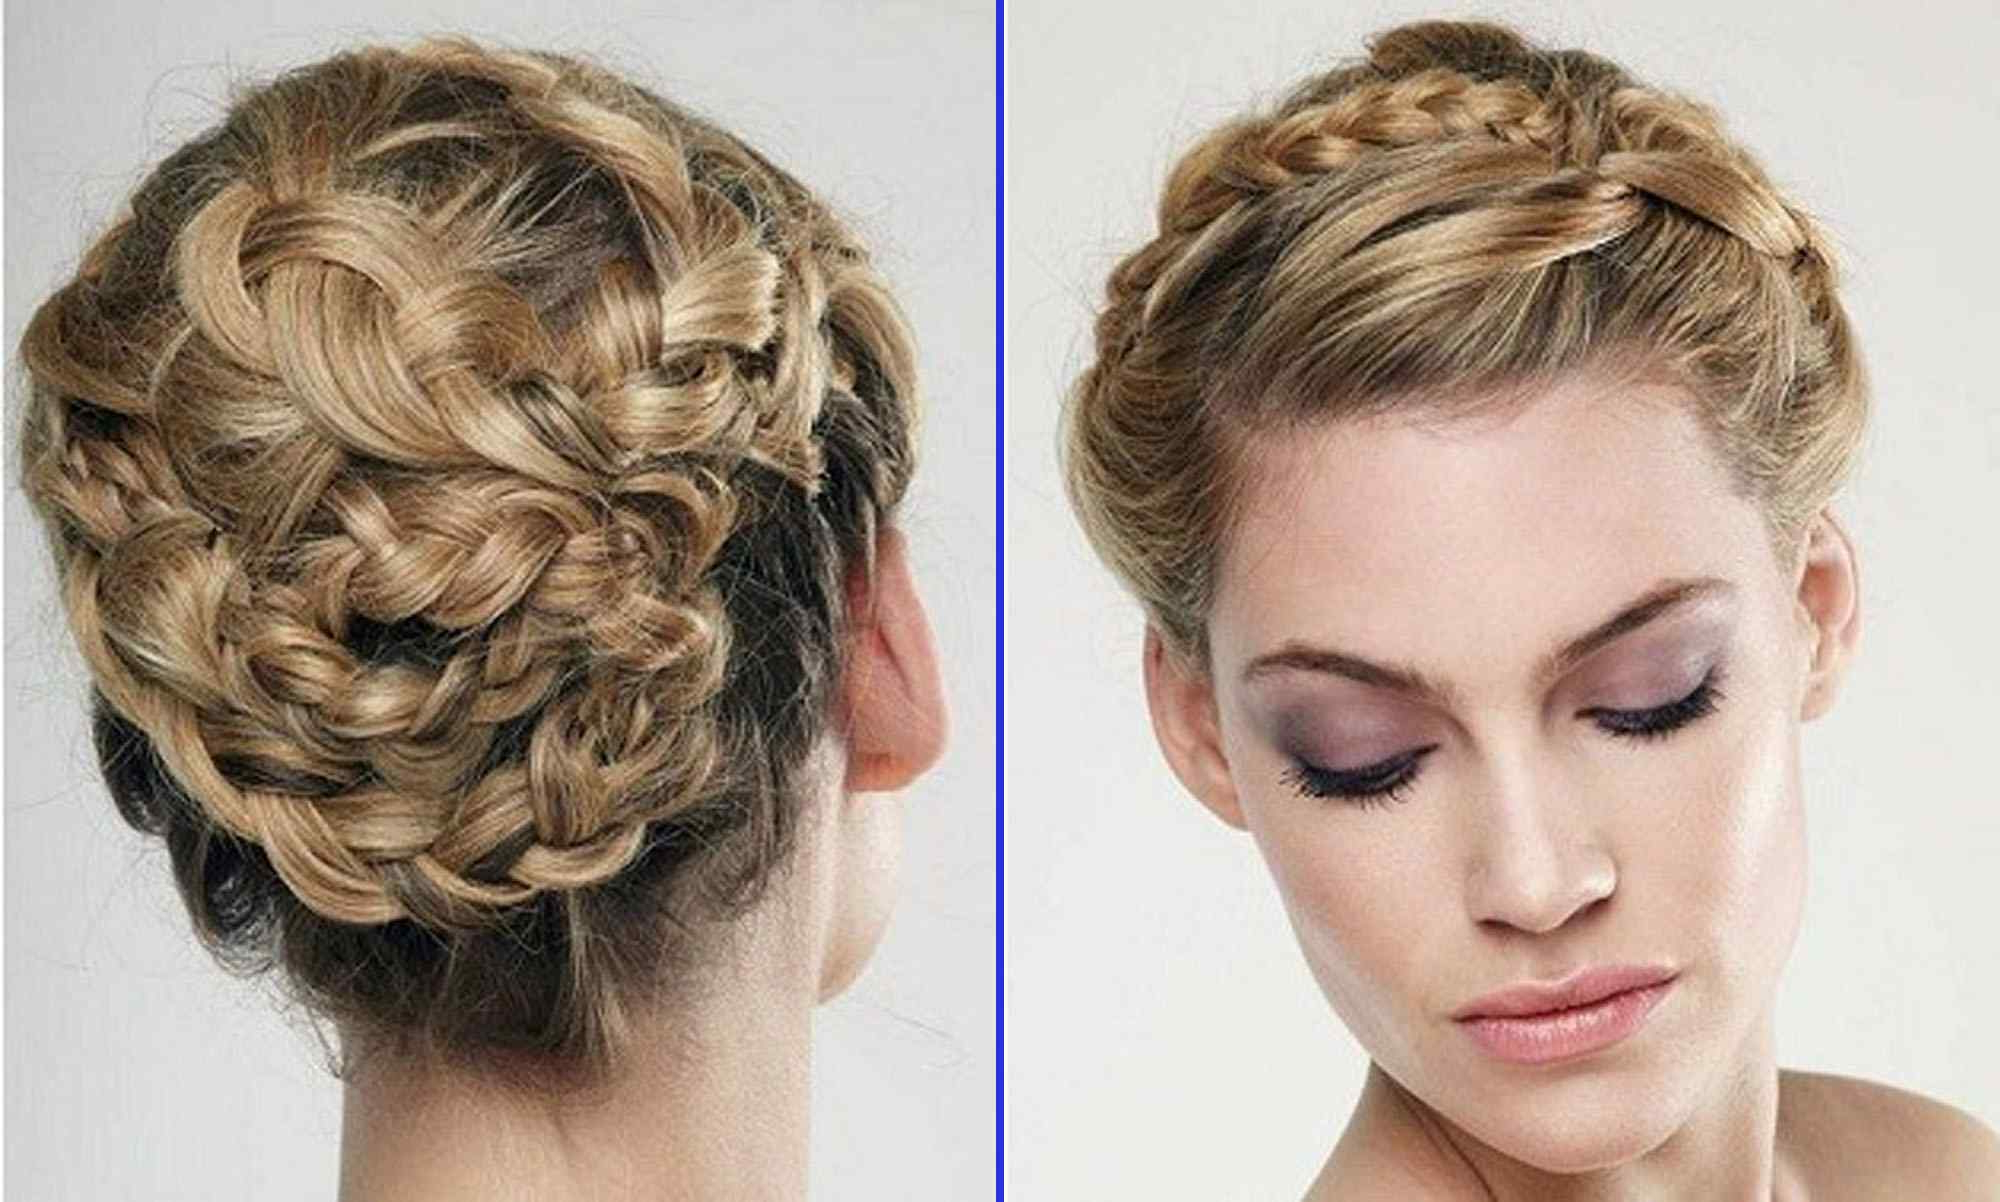 Latest Braided Bob Short Hairdo Bridal Hairstyles With Wedding Hairstyles For Short Hair Bob Bridesmaid Curls Unique Short (Gallery 6 of 20)